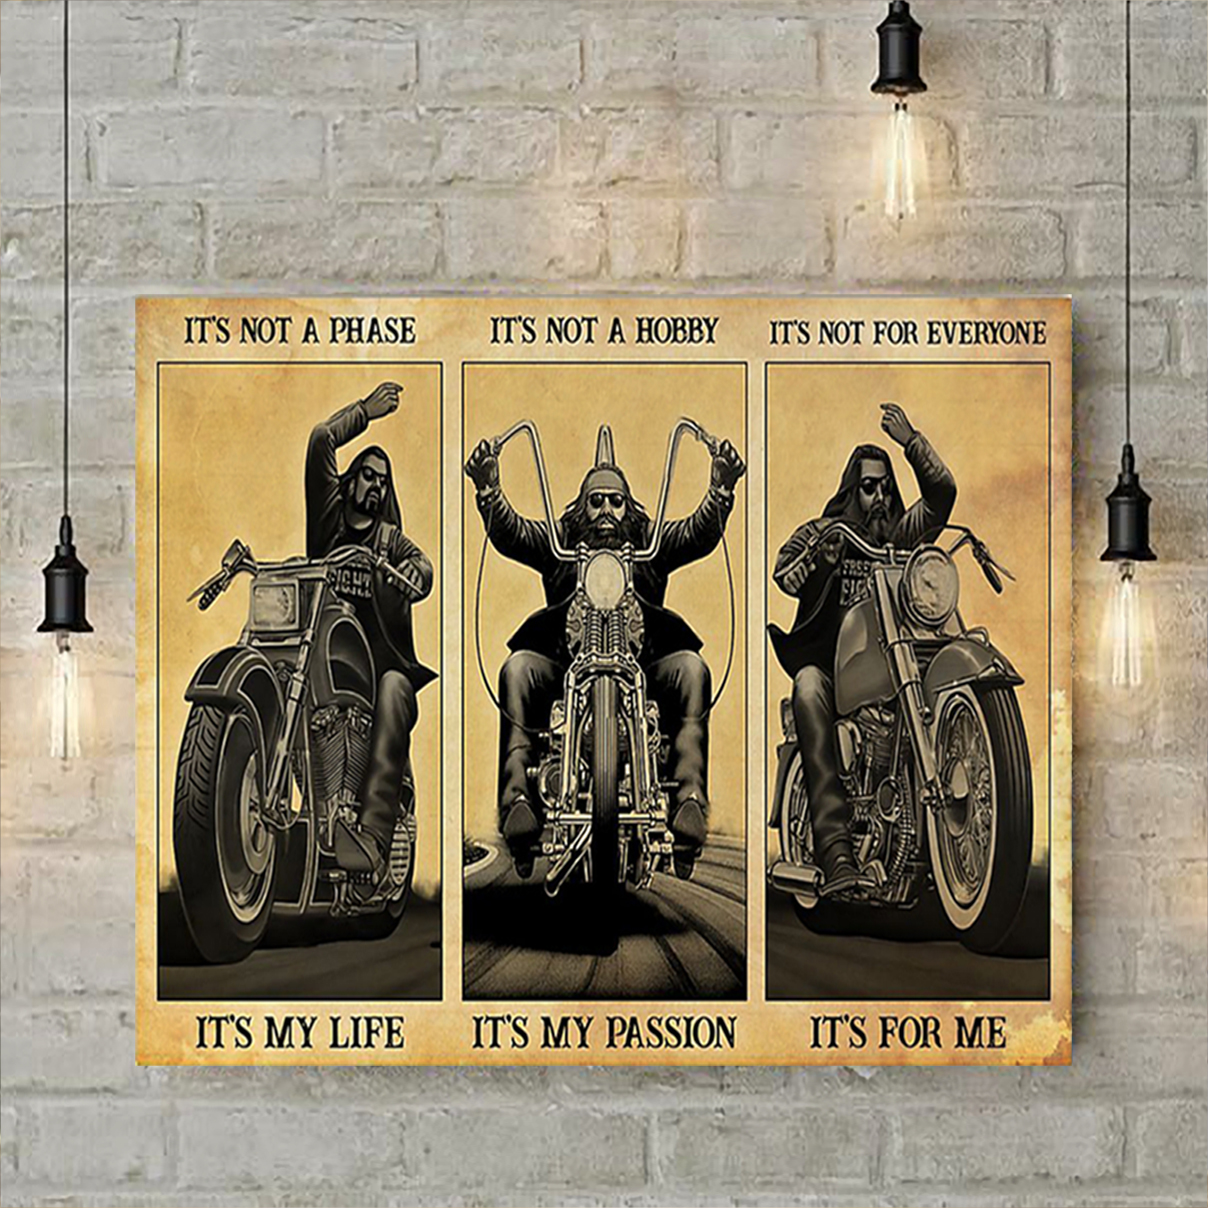 Man motorcycle it's not a phase it's my life poster A2